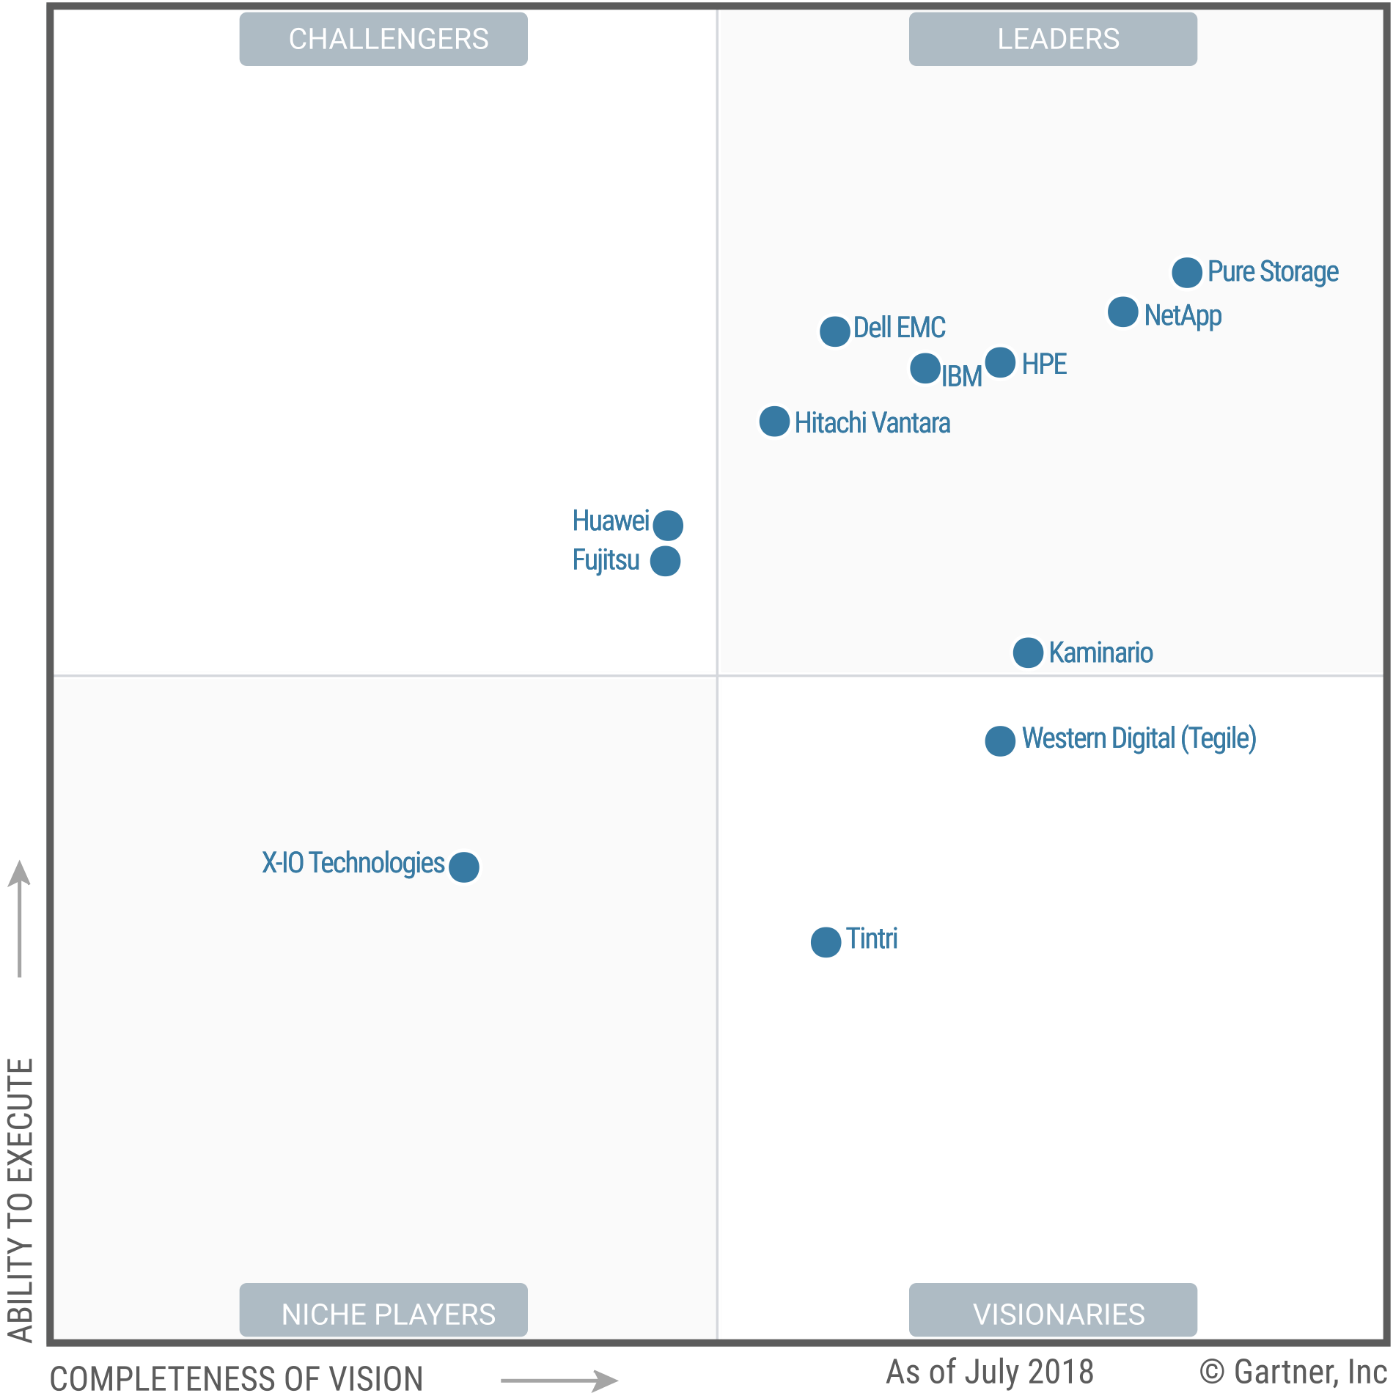 2018 Gartner Magic Quadrant for Solid State Arrays